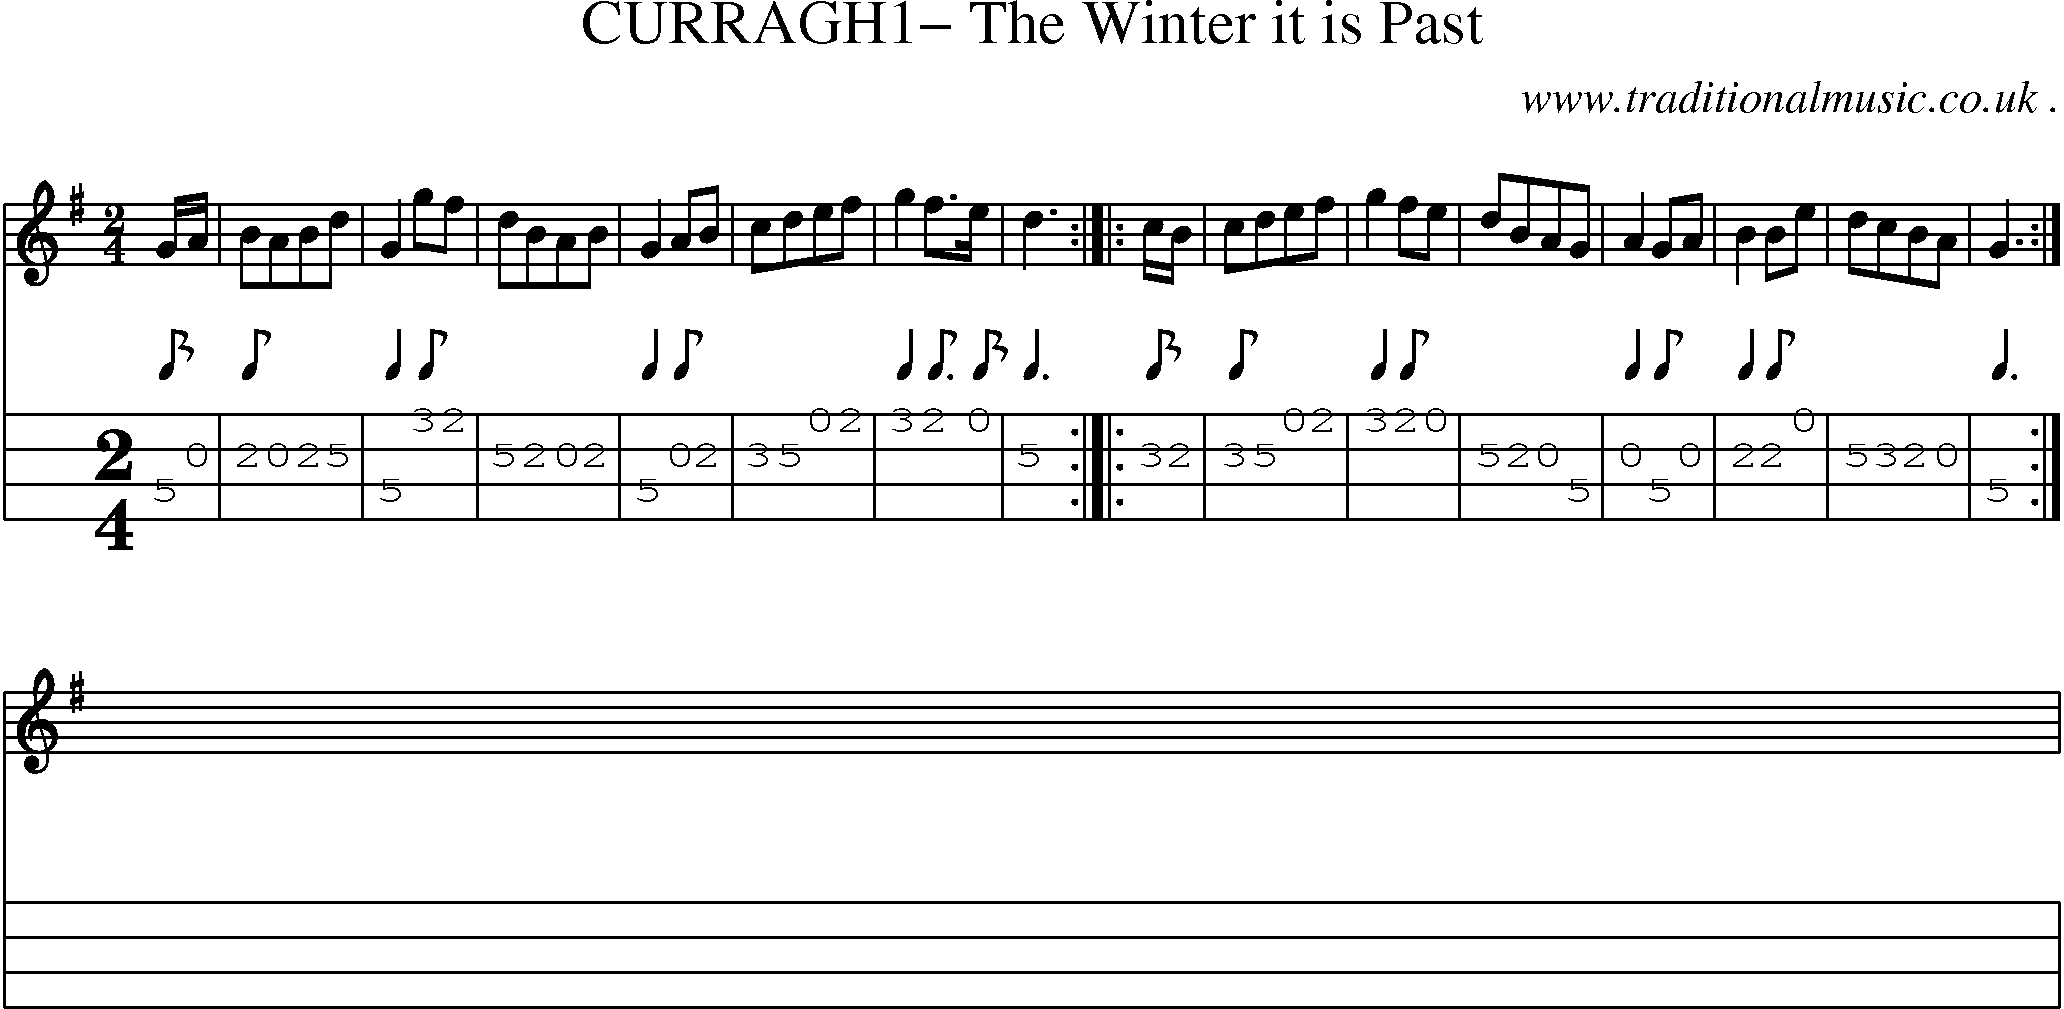 Folk and Traditional Music, Sheet-Music, Mandolin tab, midi, mp3 and PDF for: Curragh1 The ...